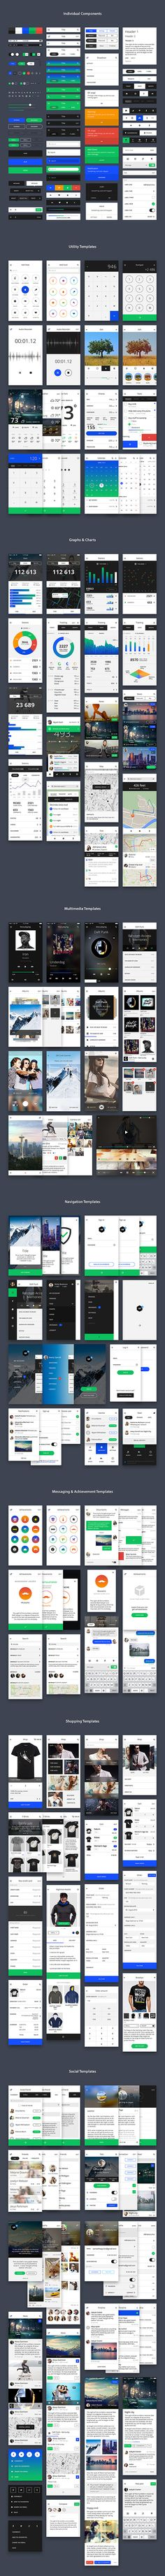 An impressive collection of individual components and templates that will allow you to easily design beautiful apps. Ios 7 Design, Dashboard Design, Tool Design, Design Process, Design Design, Mobile Application Design, Mobile App Design, User Experience Design, Customer Experience